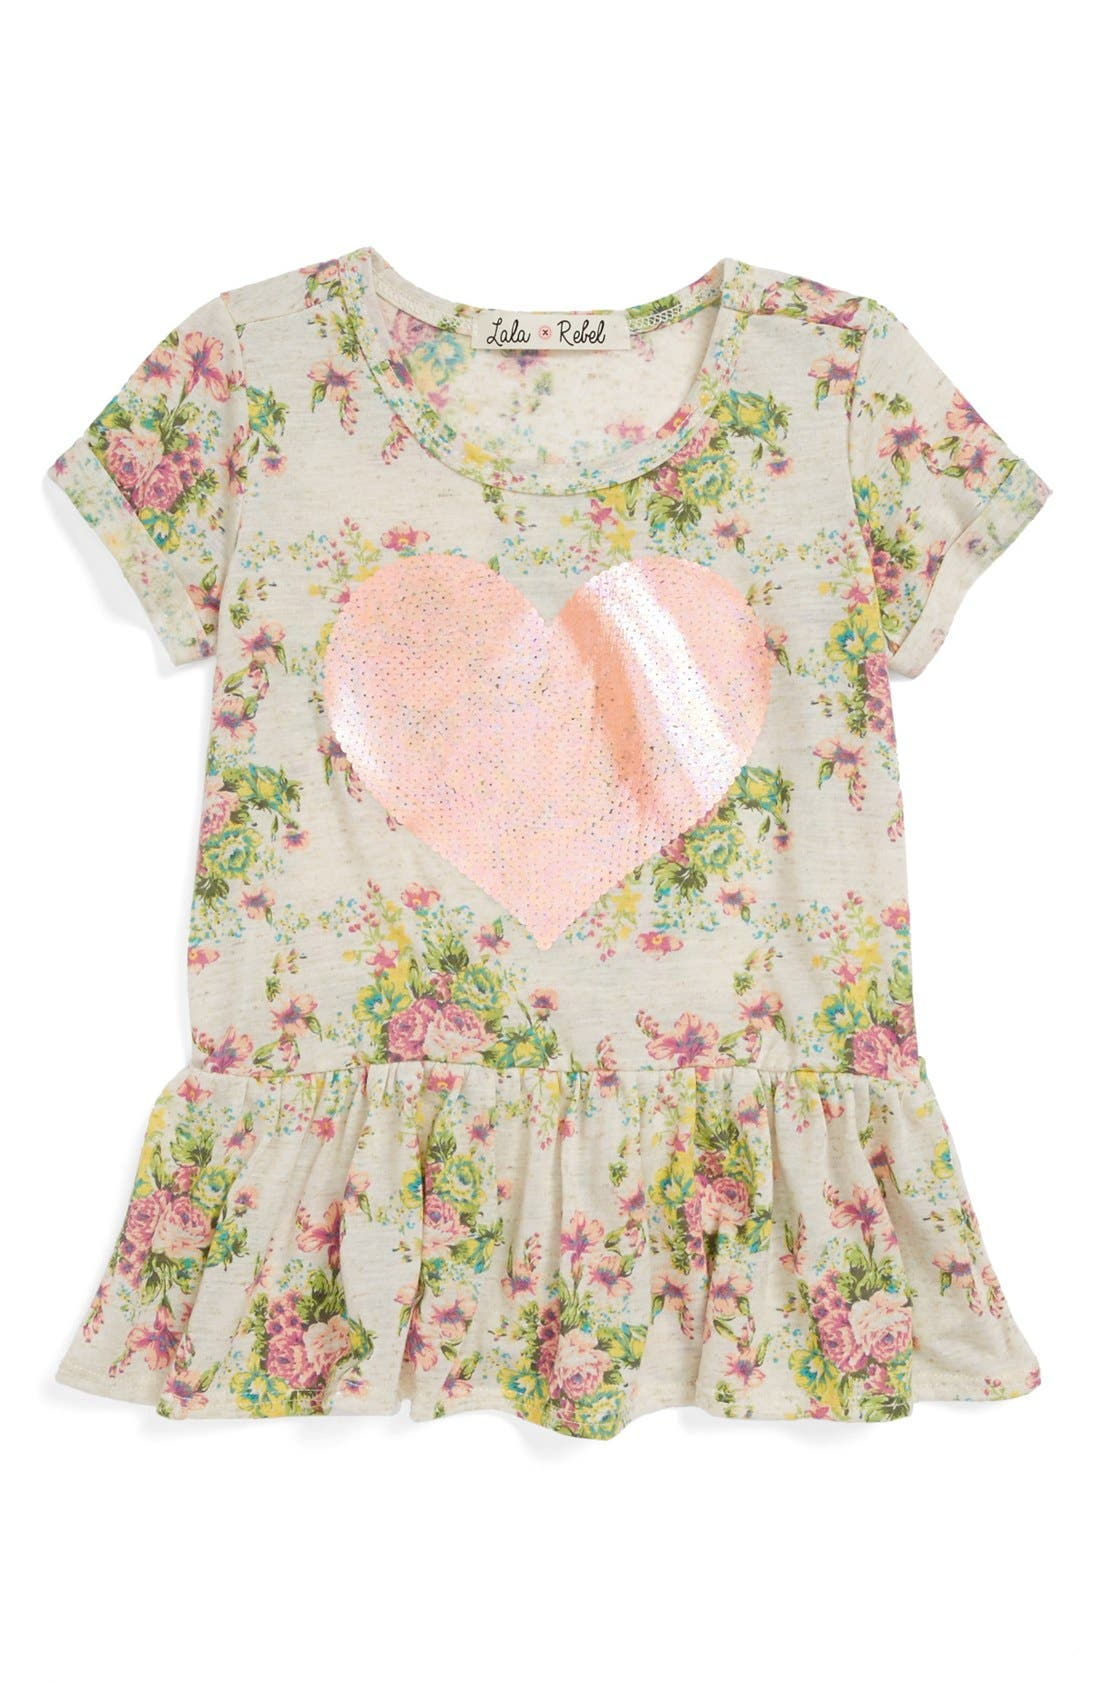 Main Image - Lala Rebel Sequin Print Peplum Top (Toddler Girls)